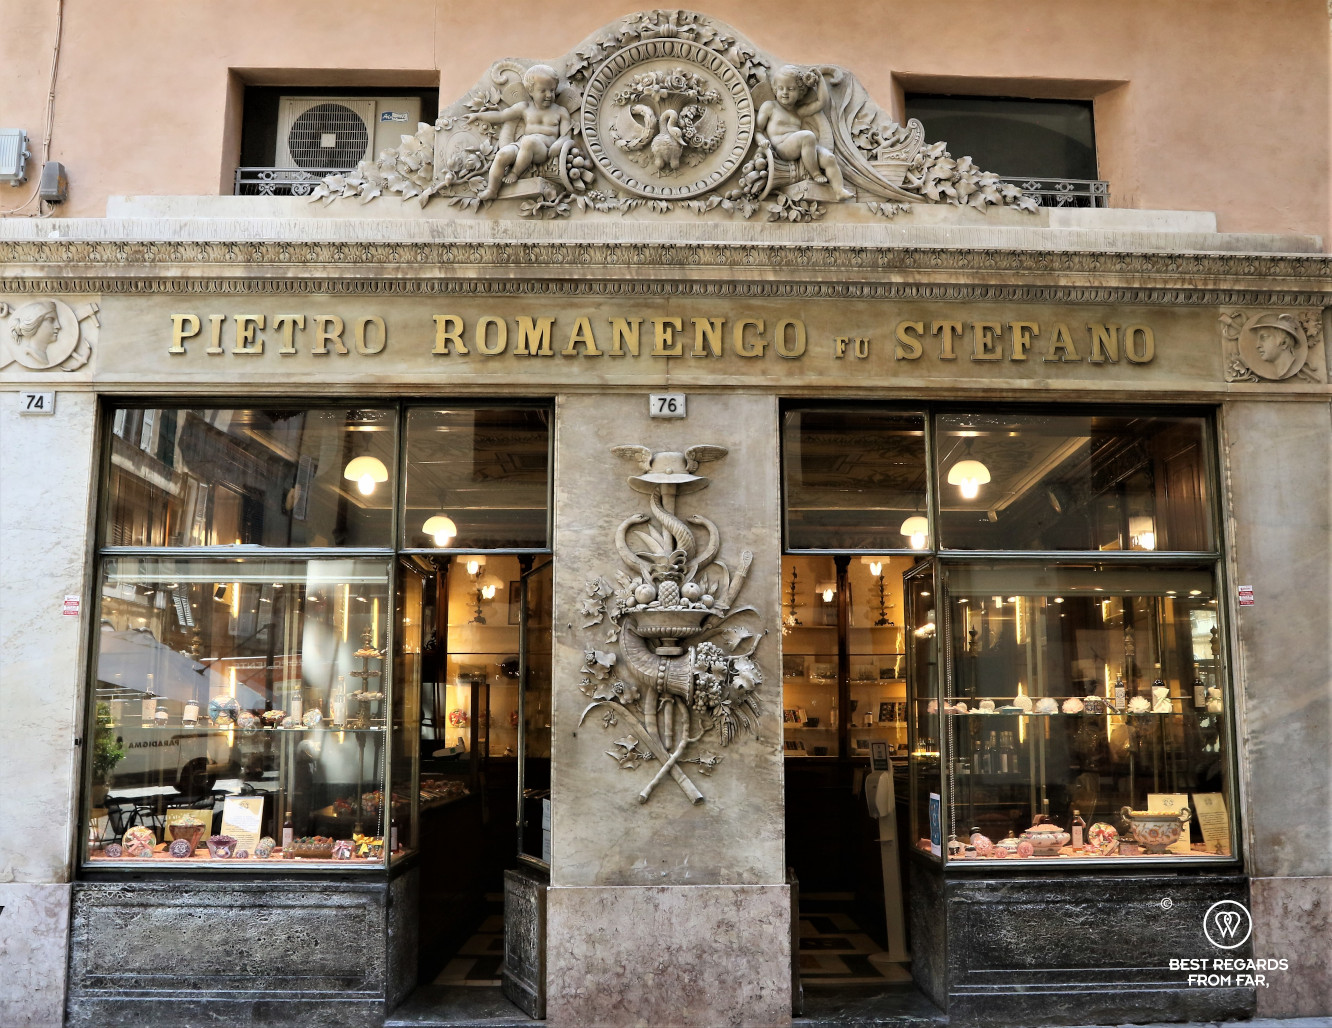 The beautiful facade of the store that dates to 1814, Pietro Romanencgo, Genoa, Italy